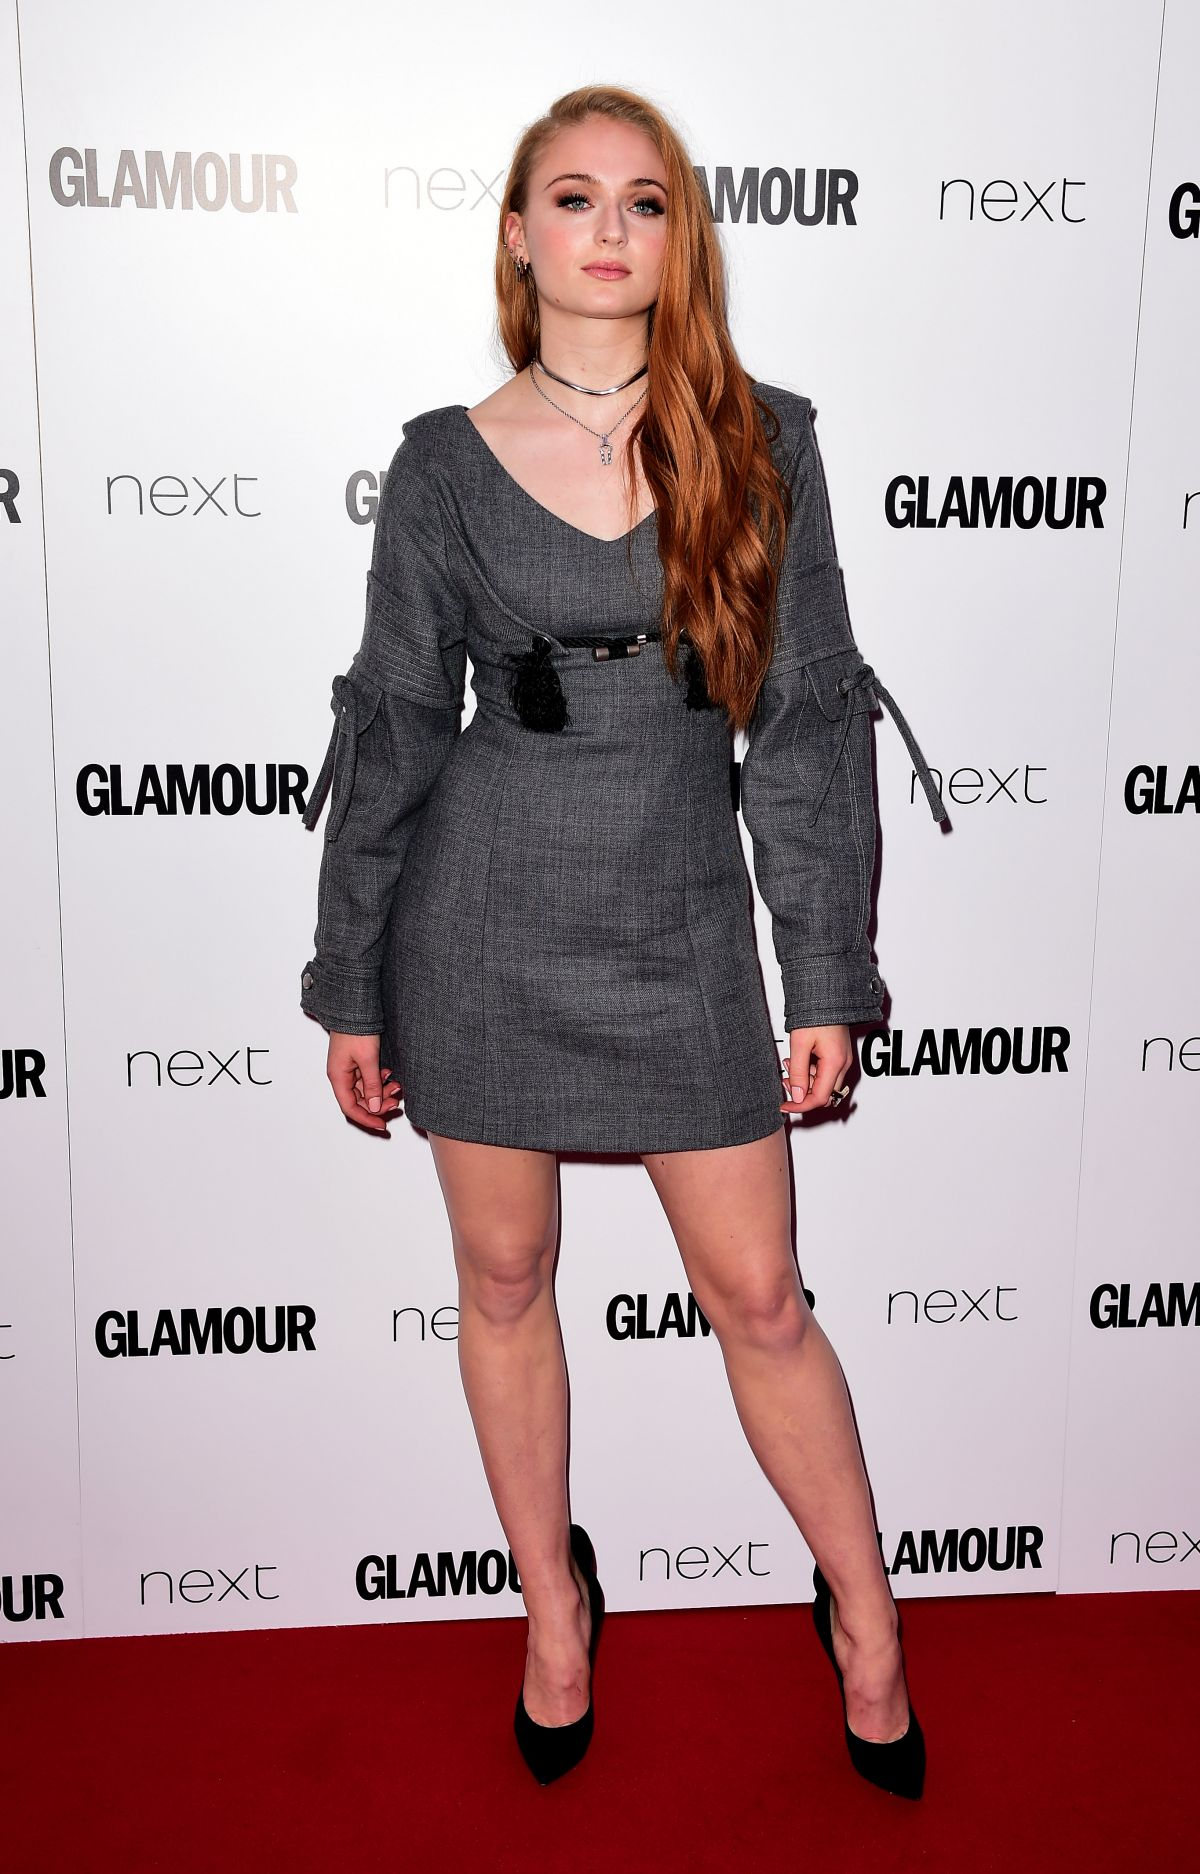 SOPHIE TURNER at Glamour Women of the Year Awards 2016 in London 06/07/2016